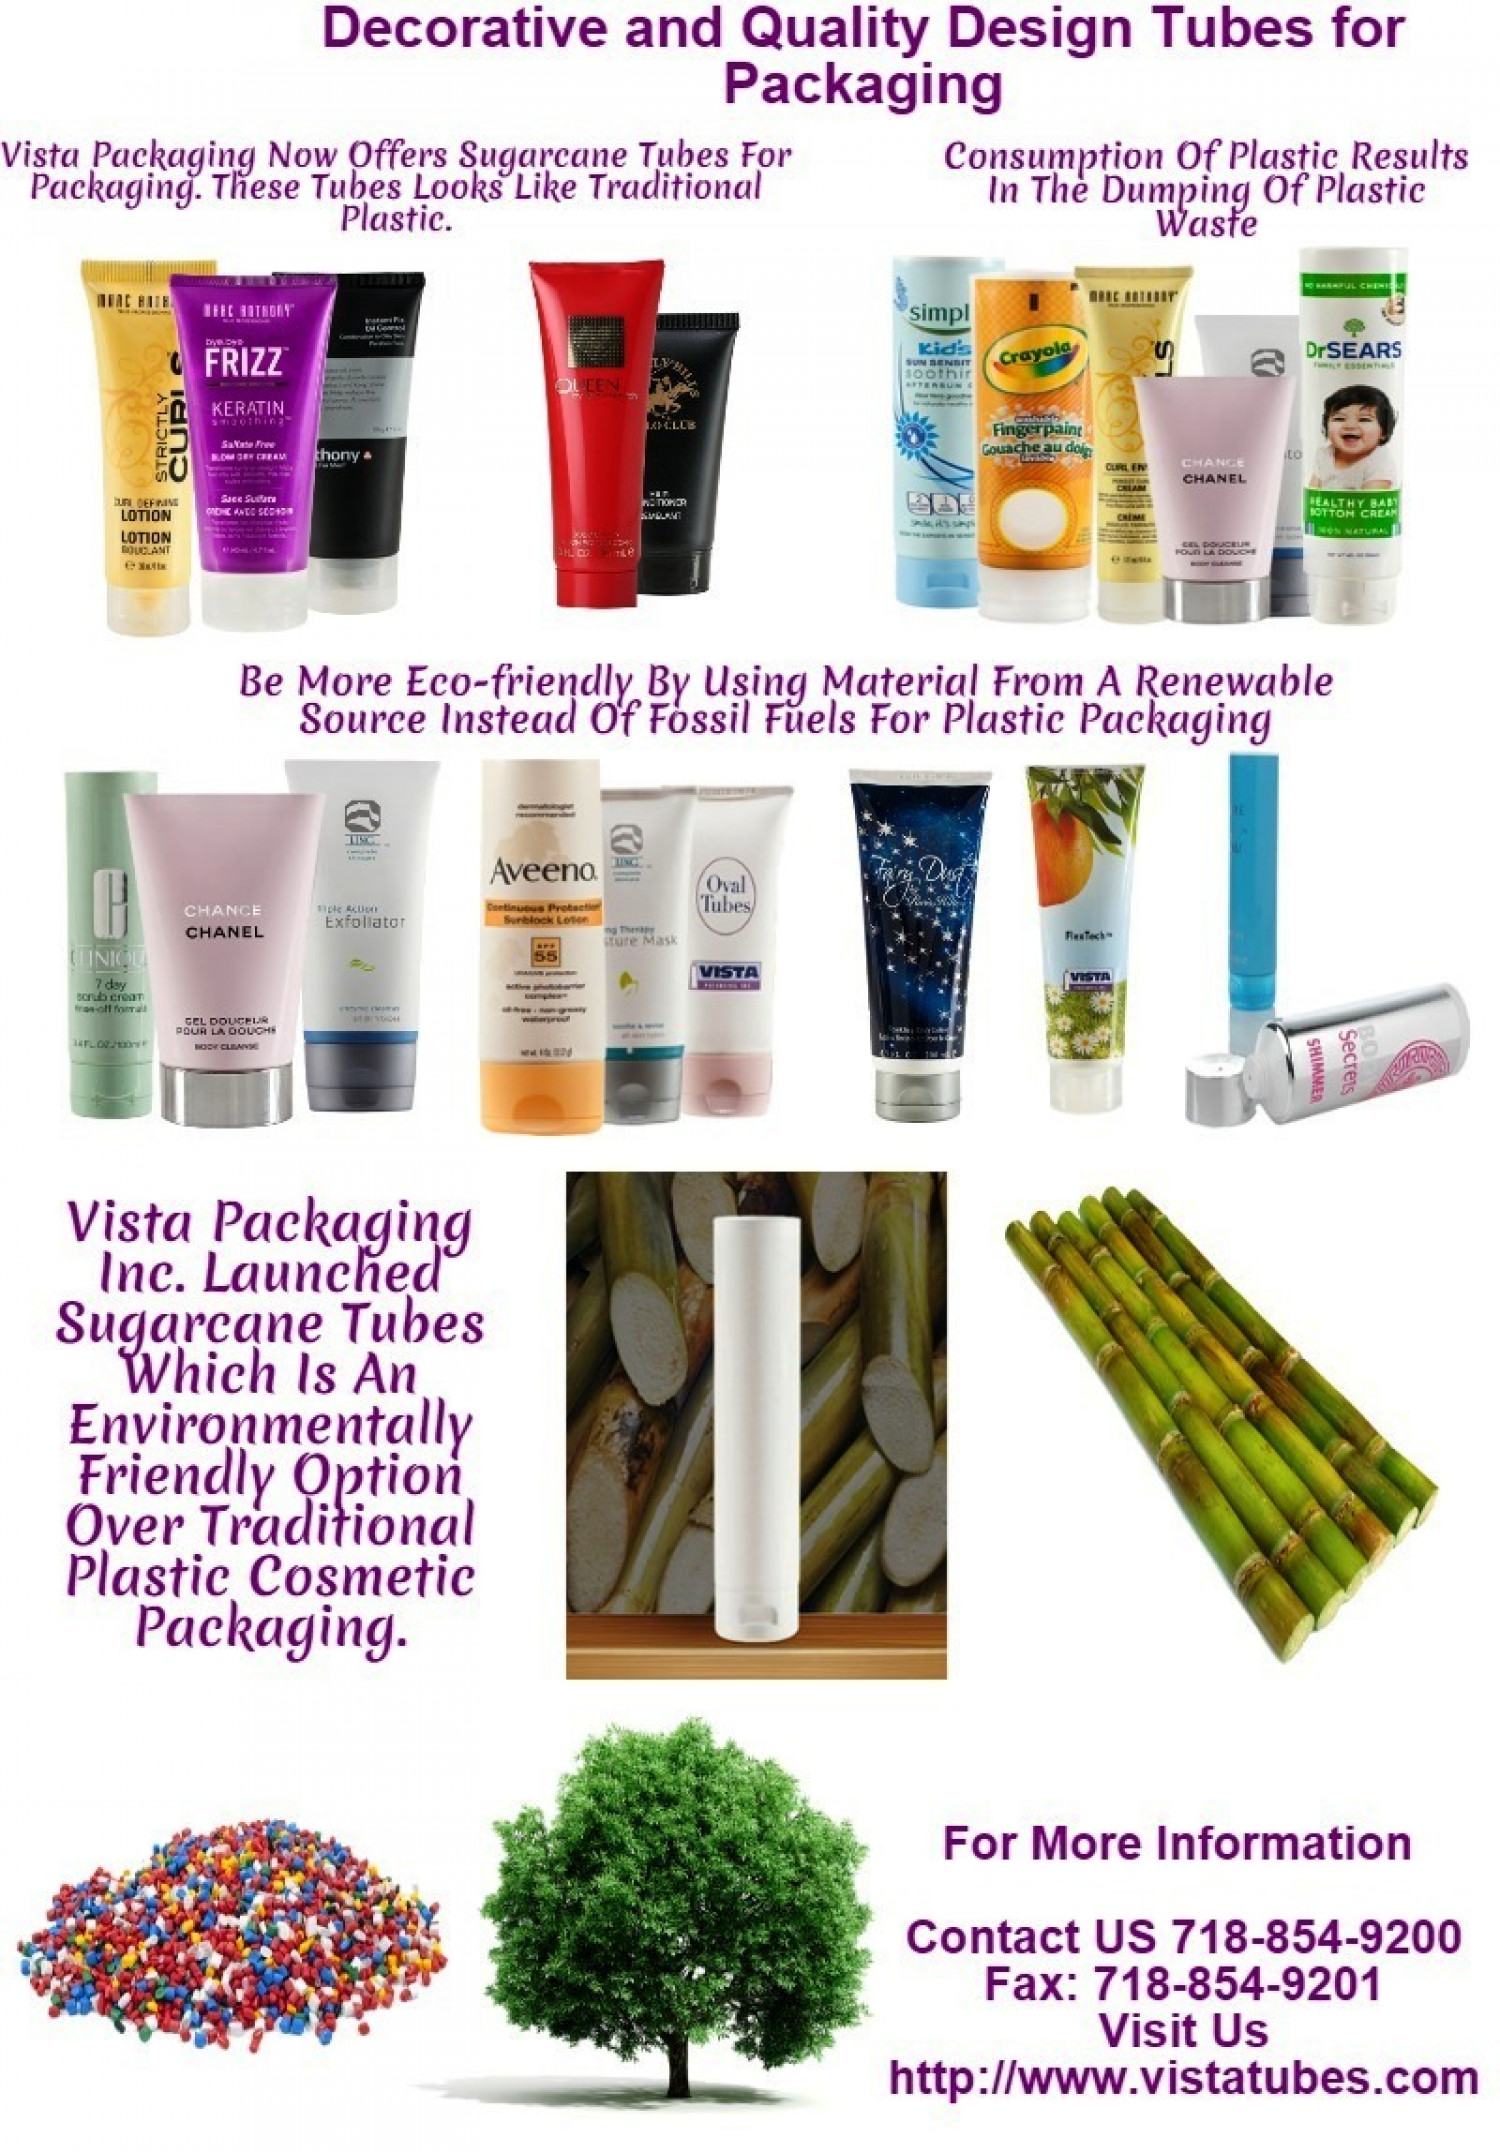 Vista Packaging Leads the Way in Environmentally Friendly Cosmetic Packaging  Infographic